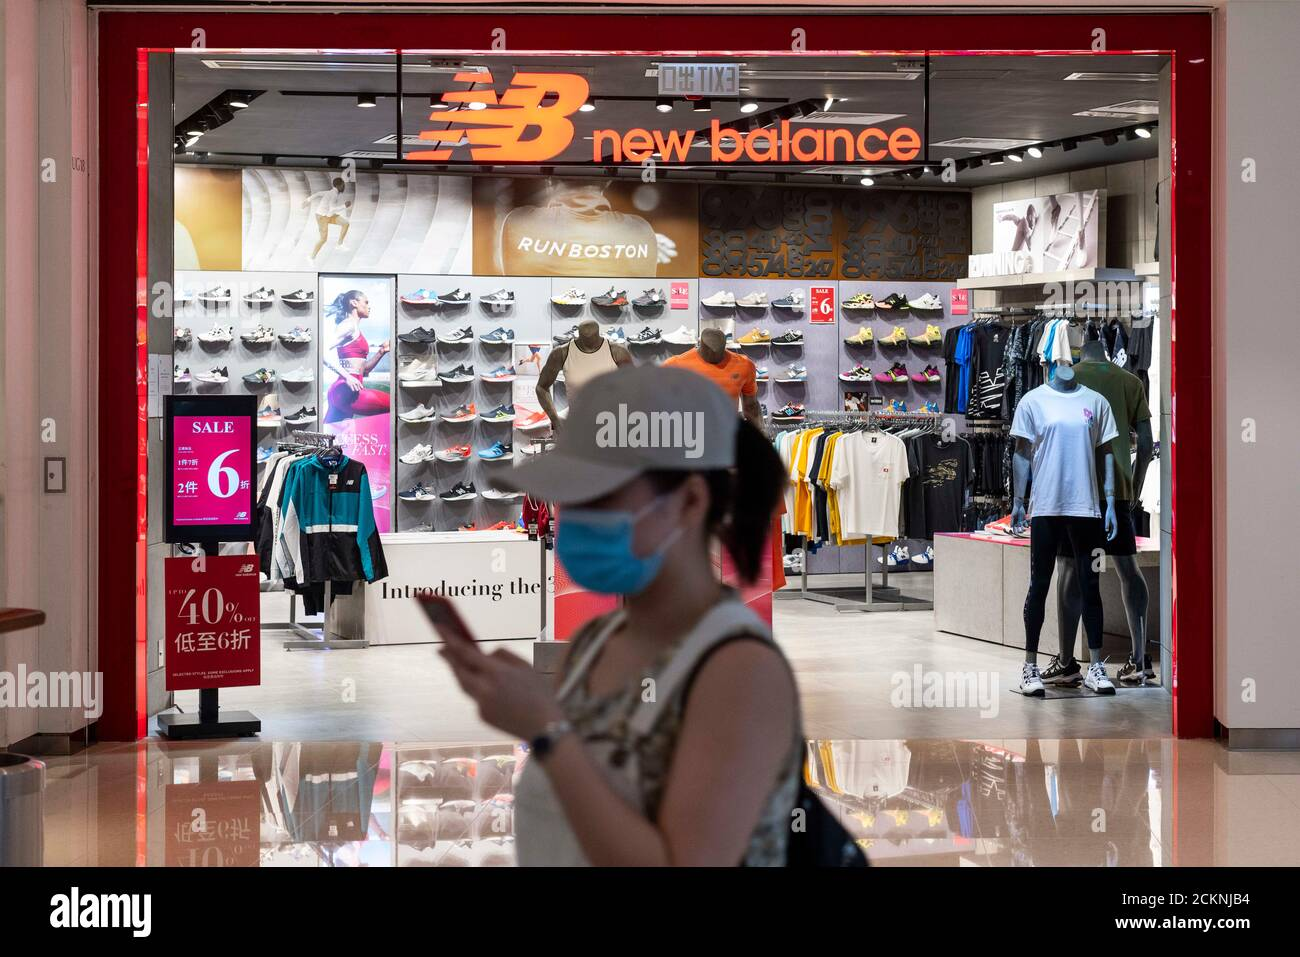 ventilador pandilla cangrejo  New Balance Store High Resolution Stock Photography and Images - Alamy